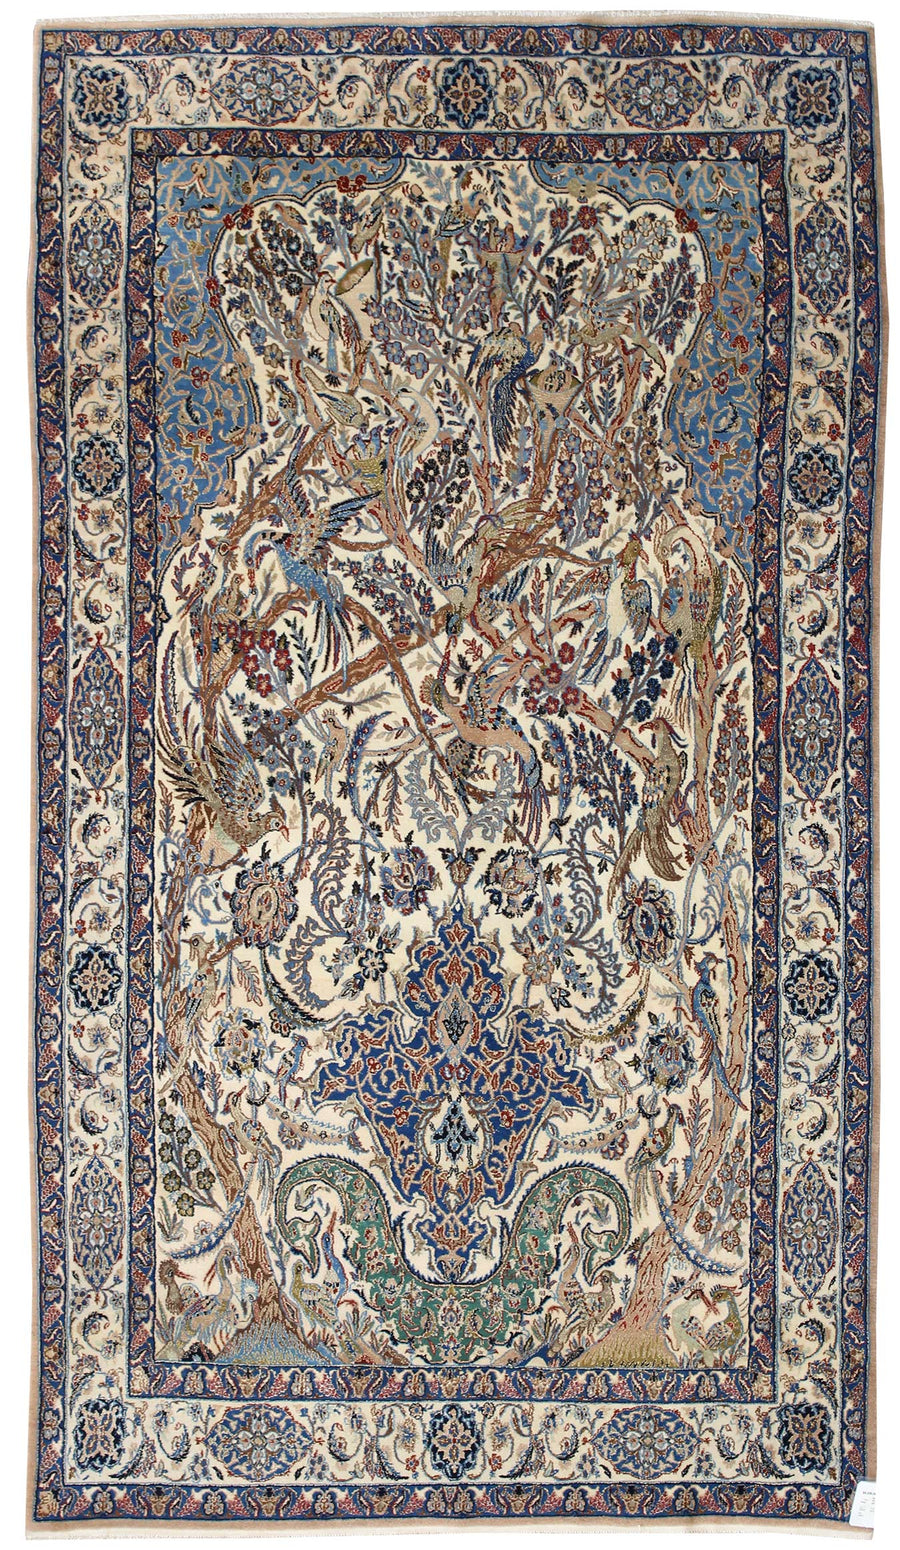 I HAVE MY EYES ON YOU HANDKNOTTED RUG, JF4847